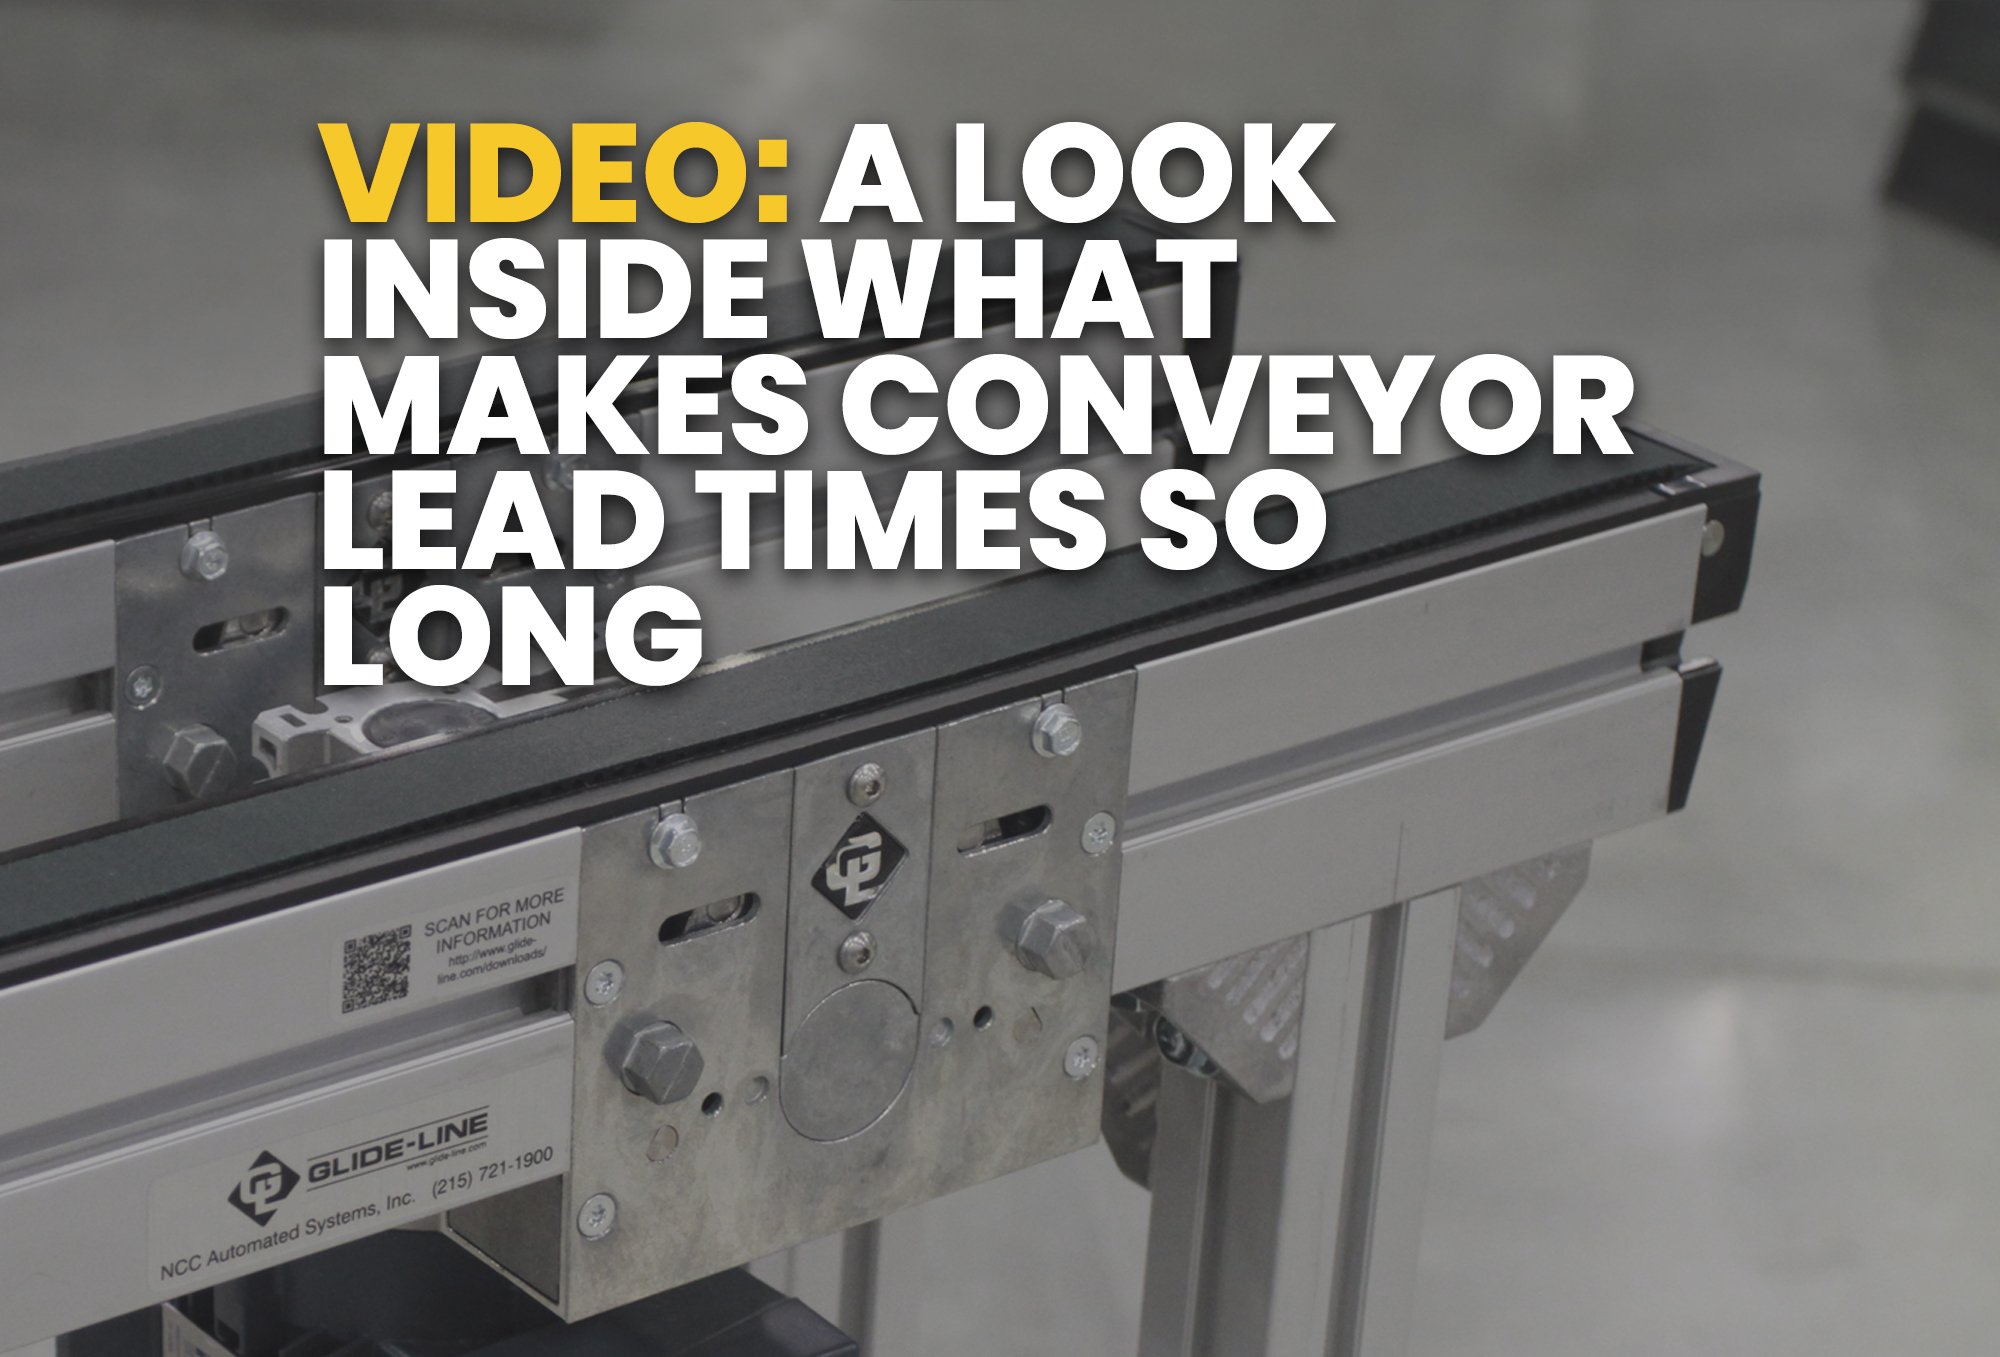 A Look Inside What Makes Conveyor Lead Times So Long - Resource